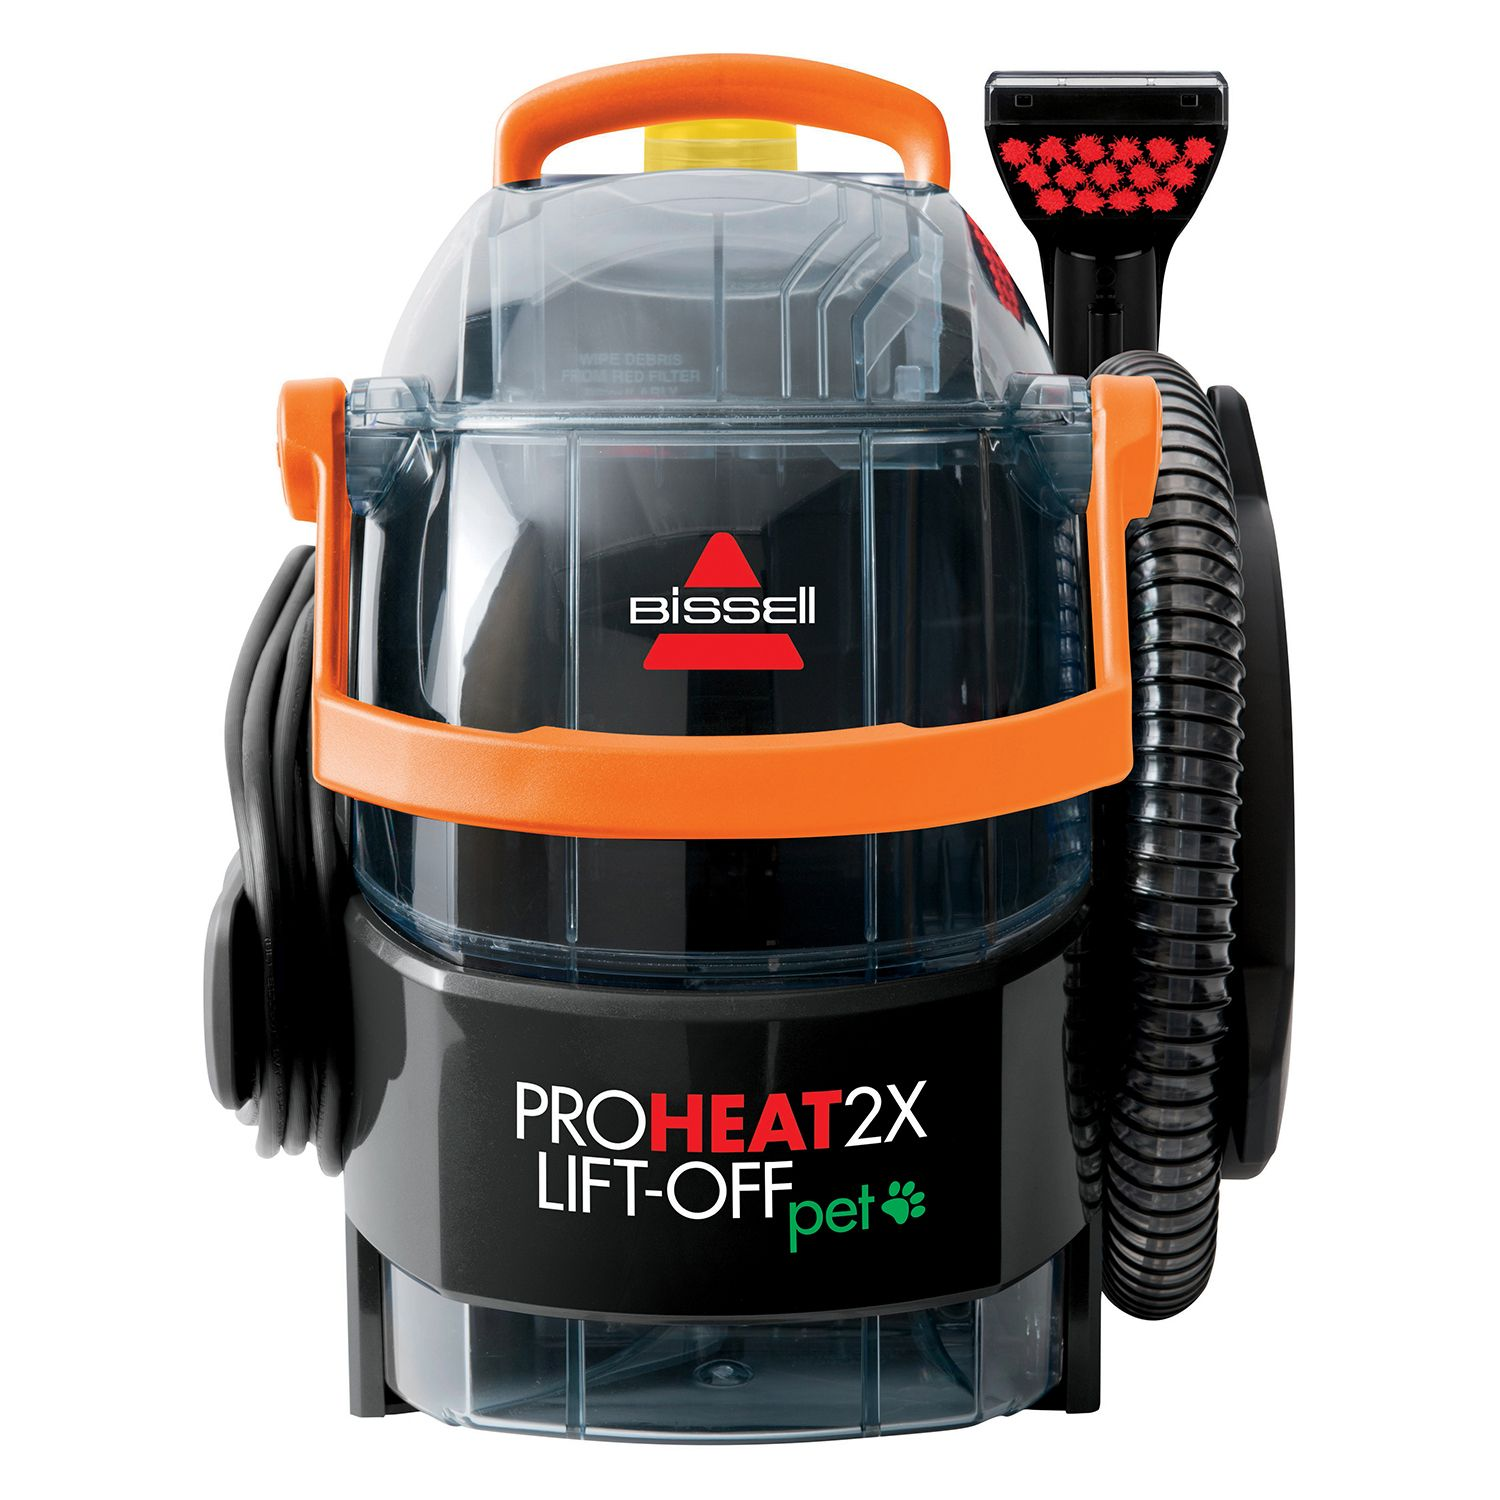 bissell proheat 2x liftoff pet upright carpet cleaner